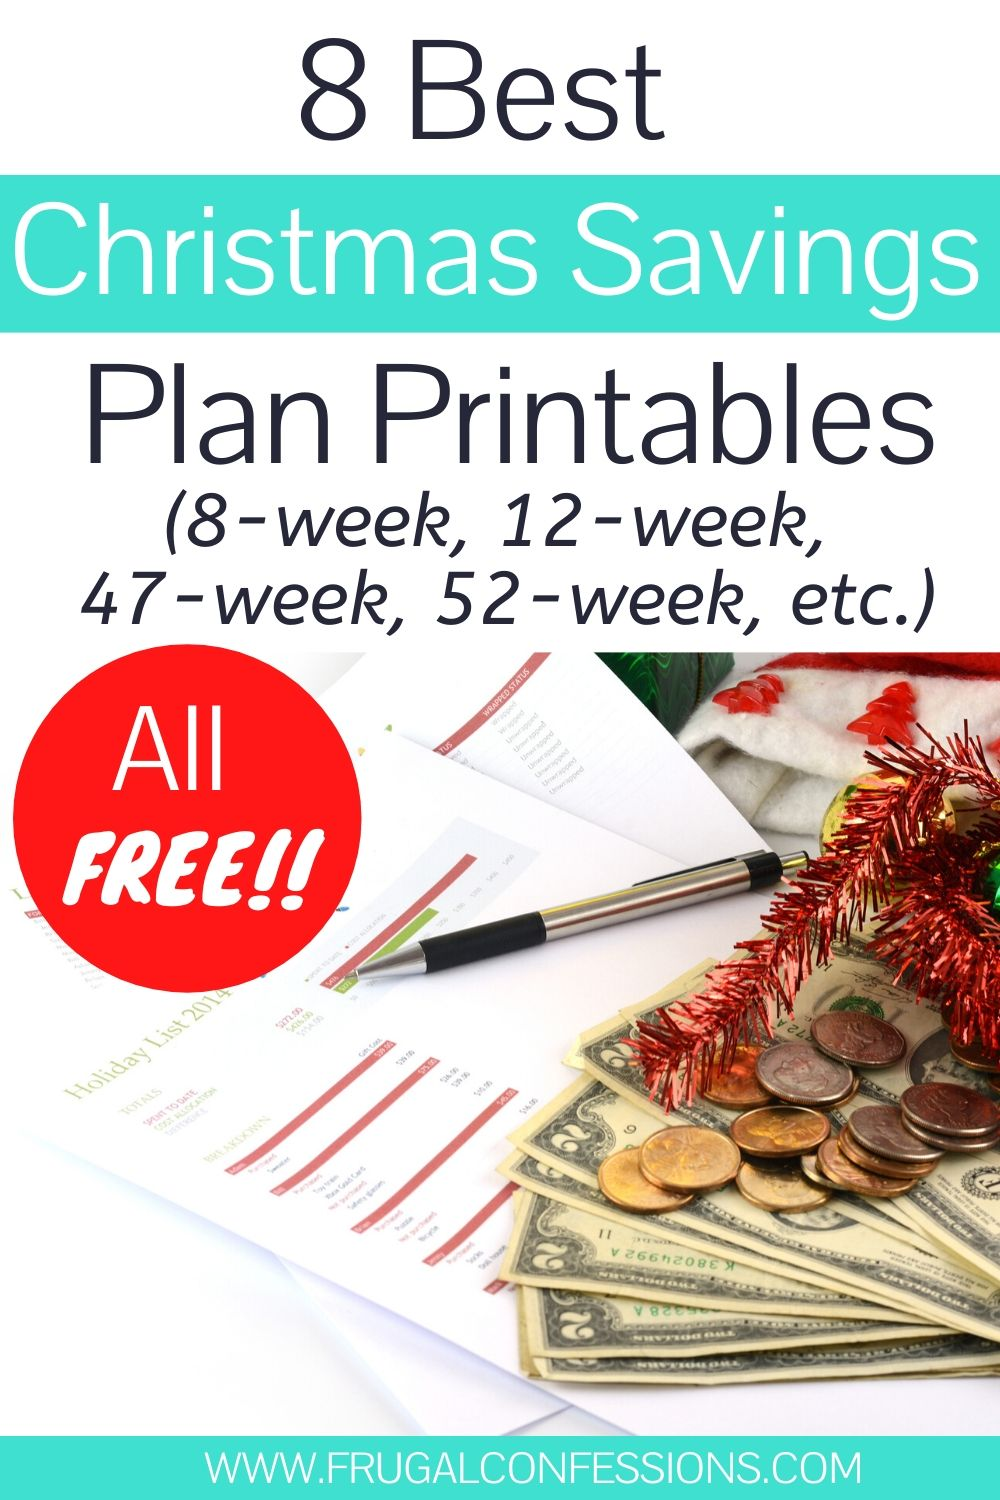 pen, savings plan printable, holly, and money on desk, text overlay